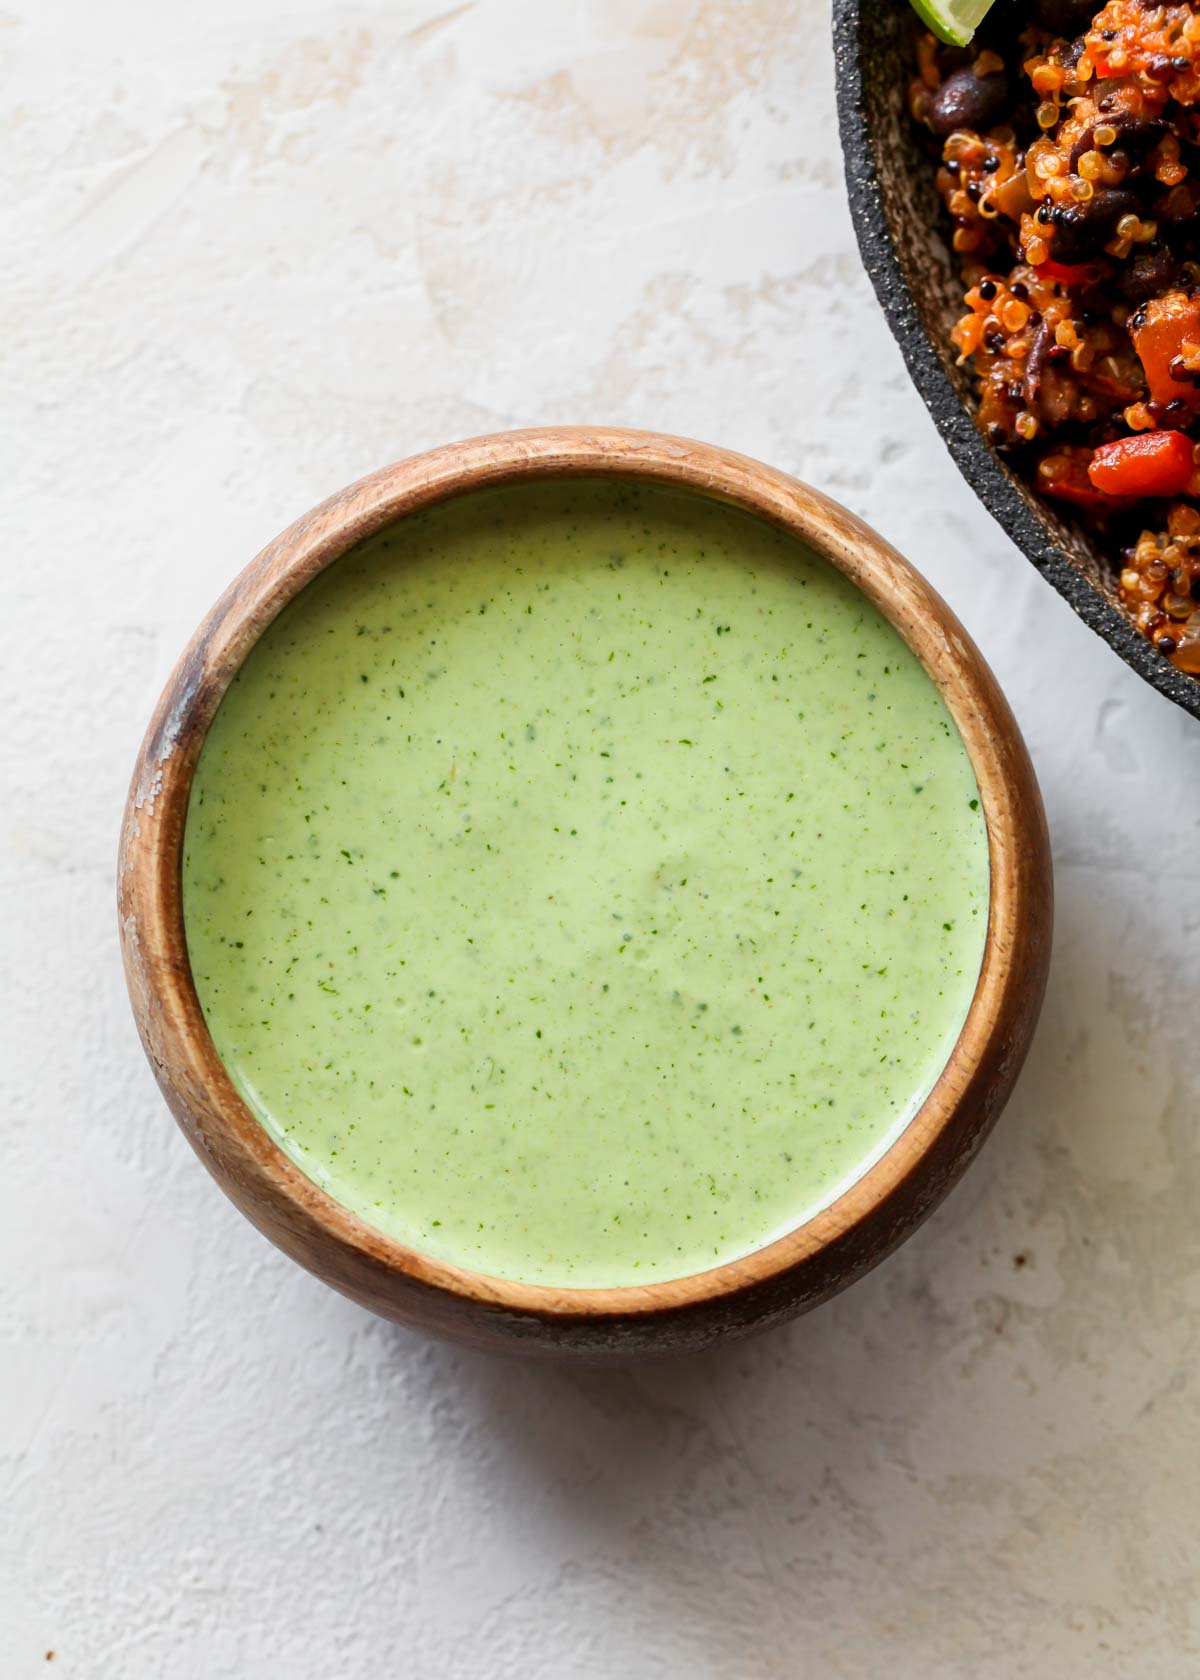 Cilantro-lime sauce in a small brown bowl